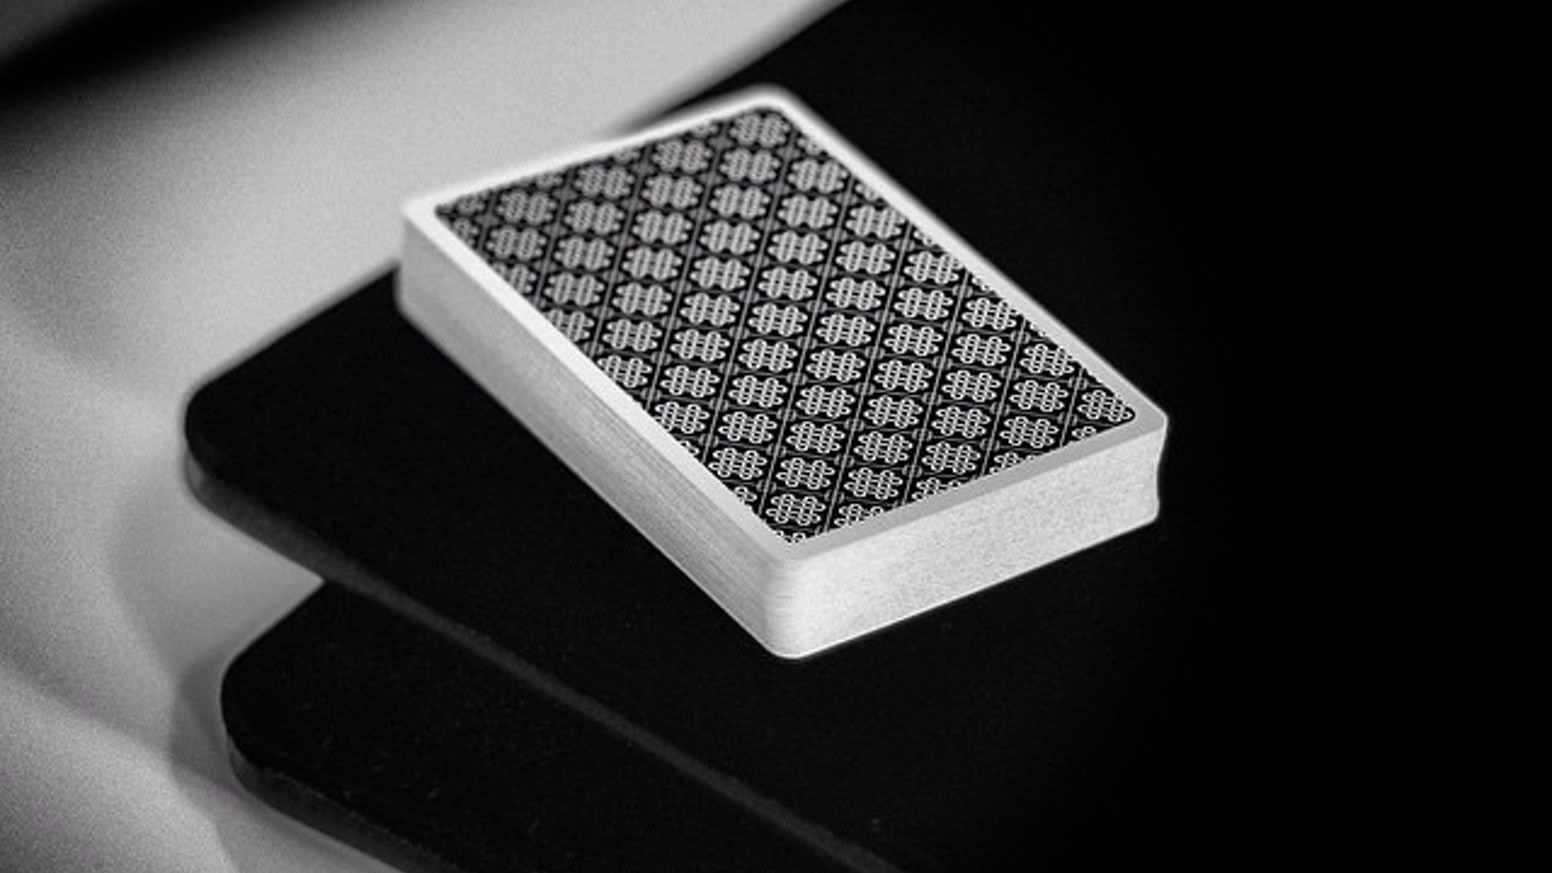 Luxury Playing Cards for the Modern Cardician. A Merger of Form and Function. Presented by 52Kards.com